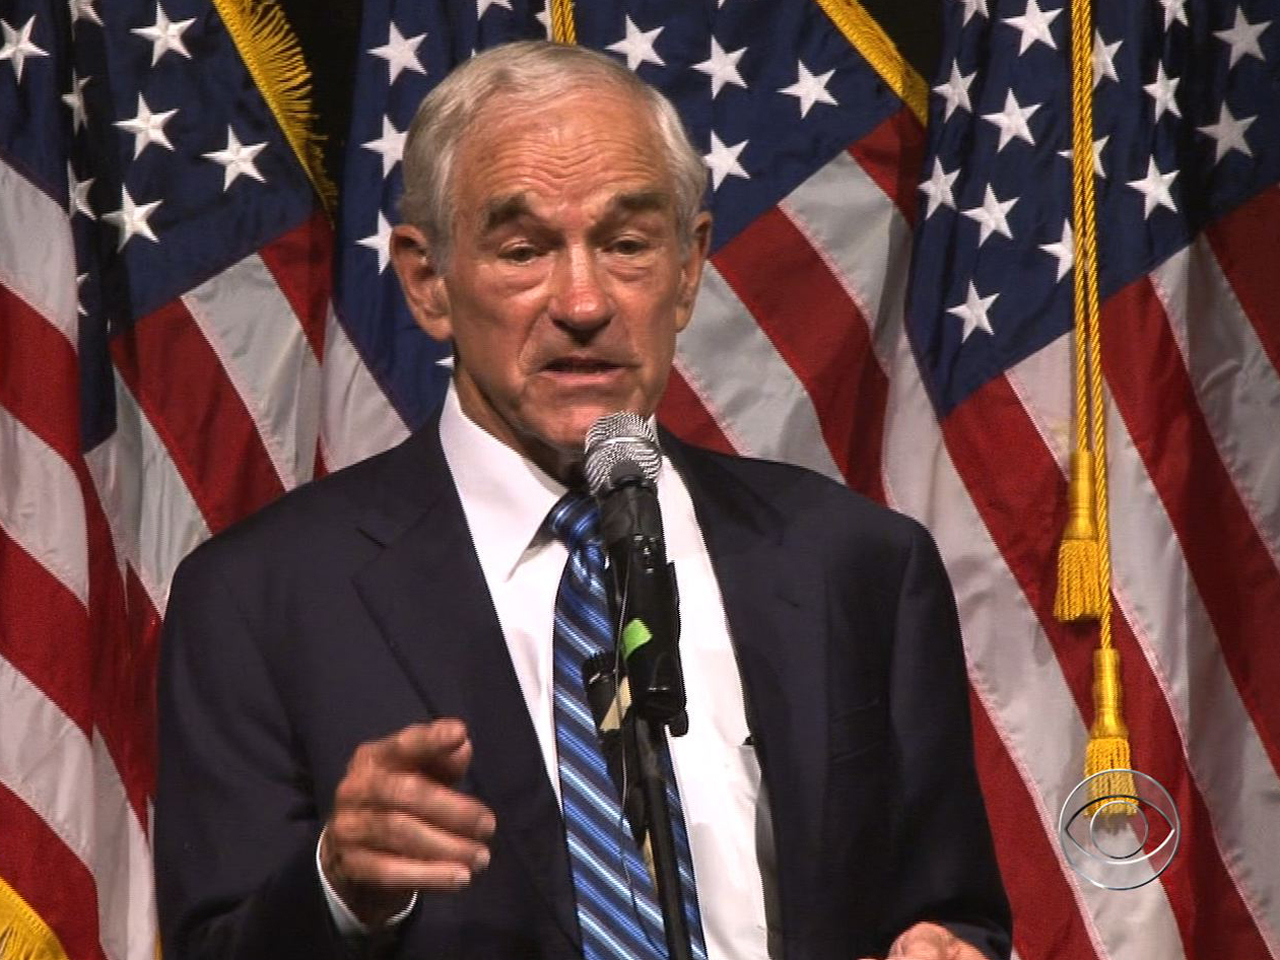 ron paul on meet the press 12 11